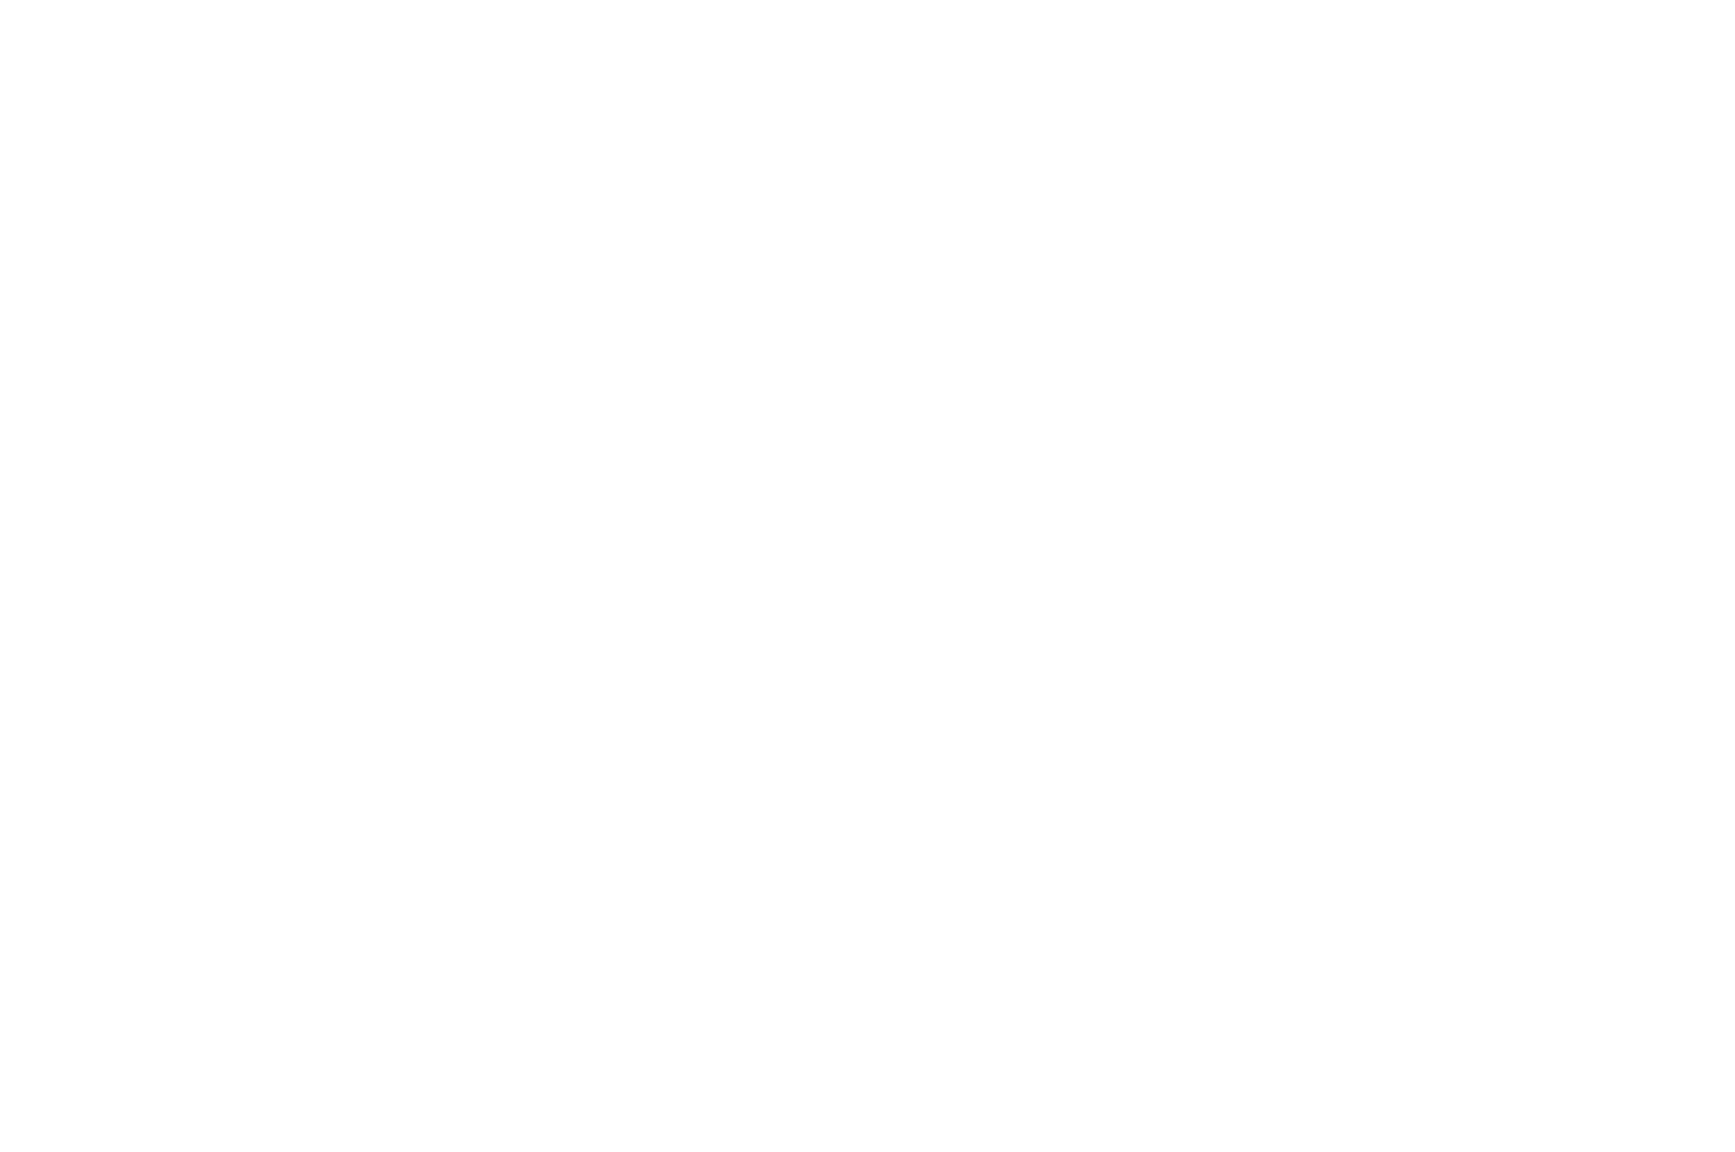 OFFICIAL SELECTION - Los Angeles International Screenplay Awards - 2020